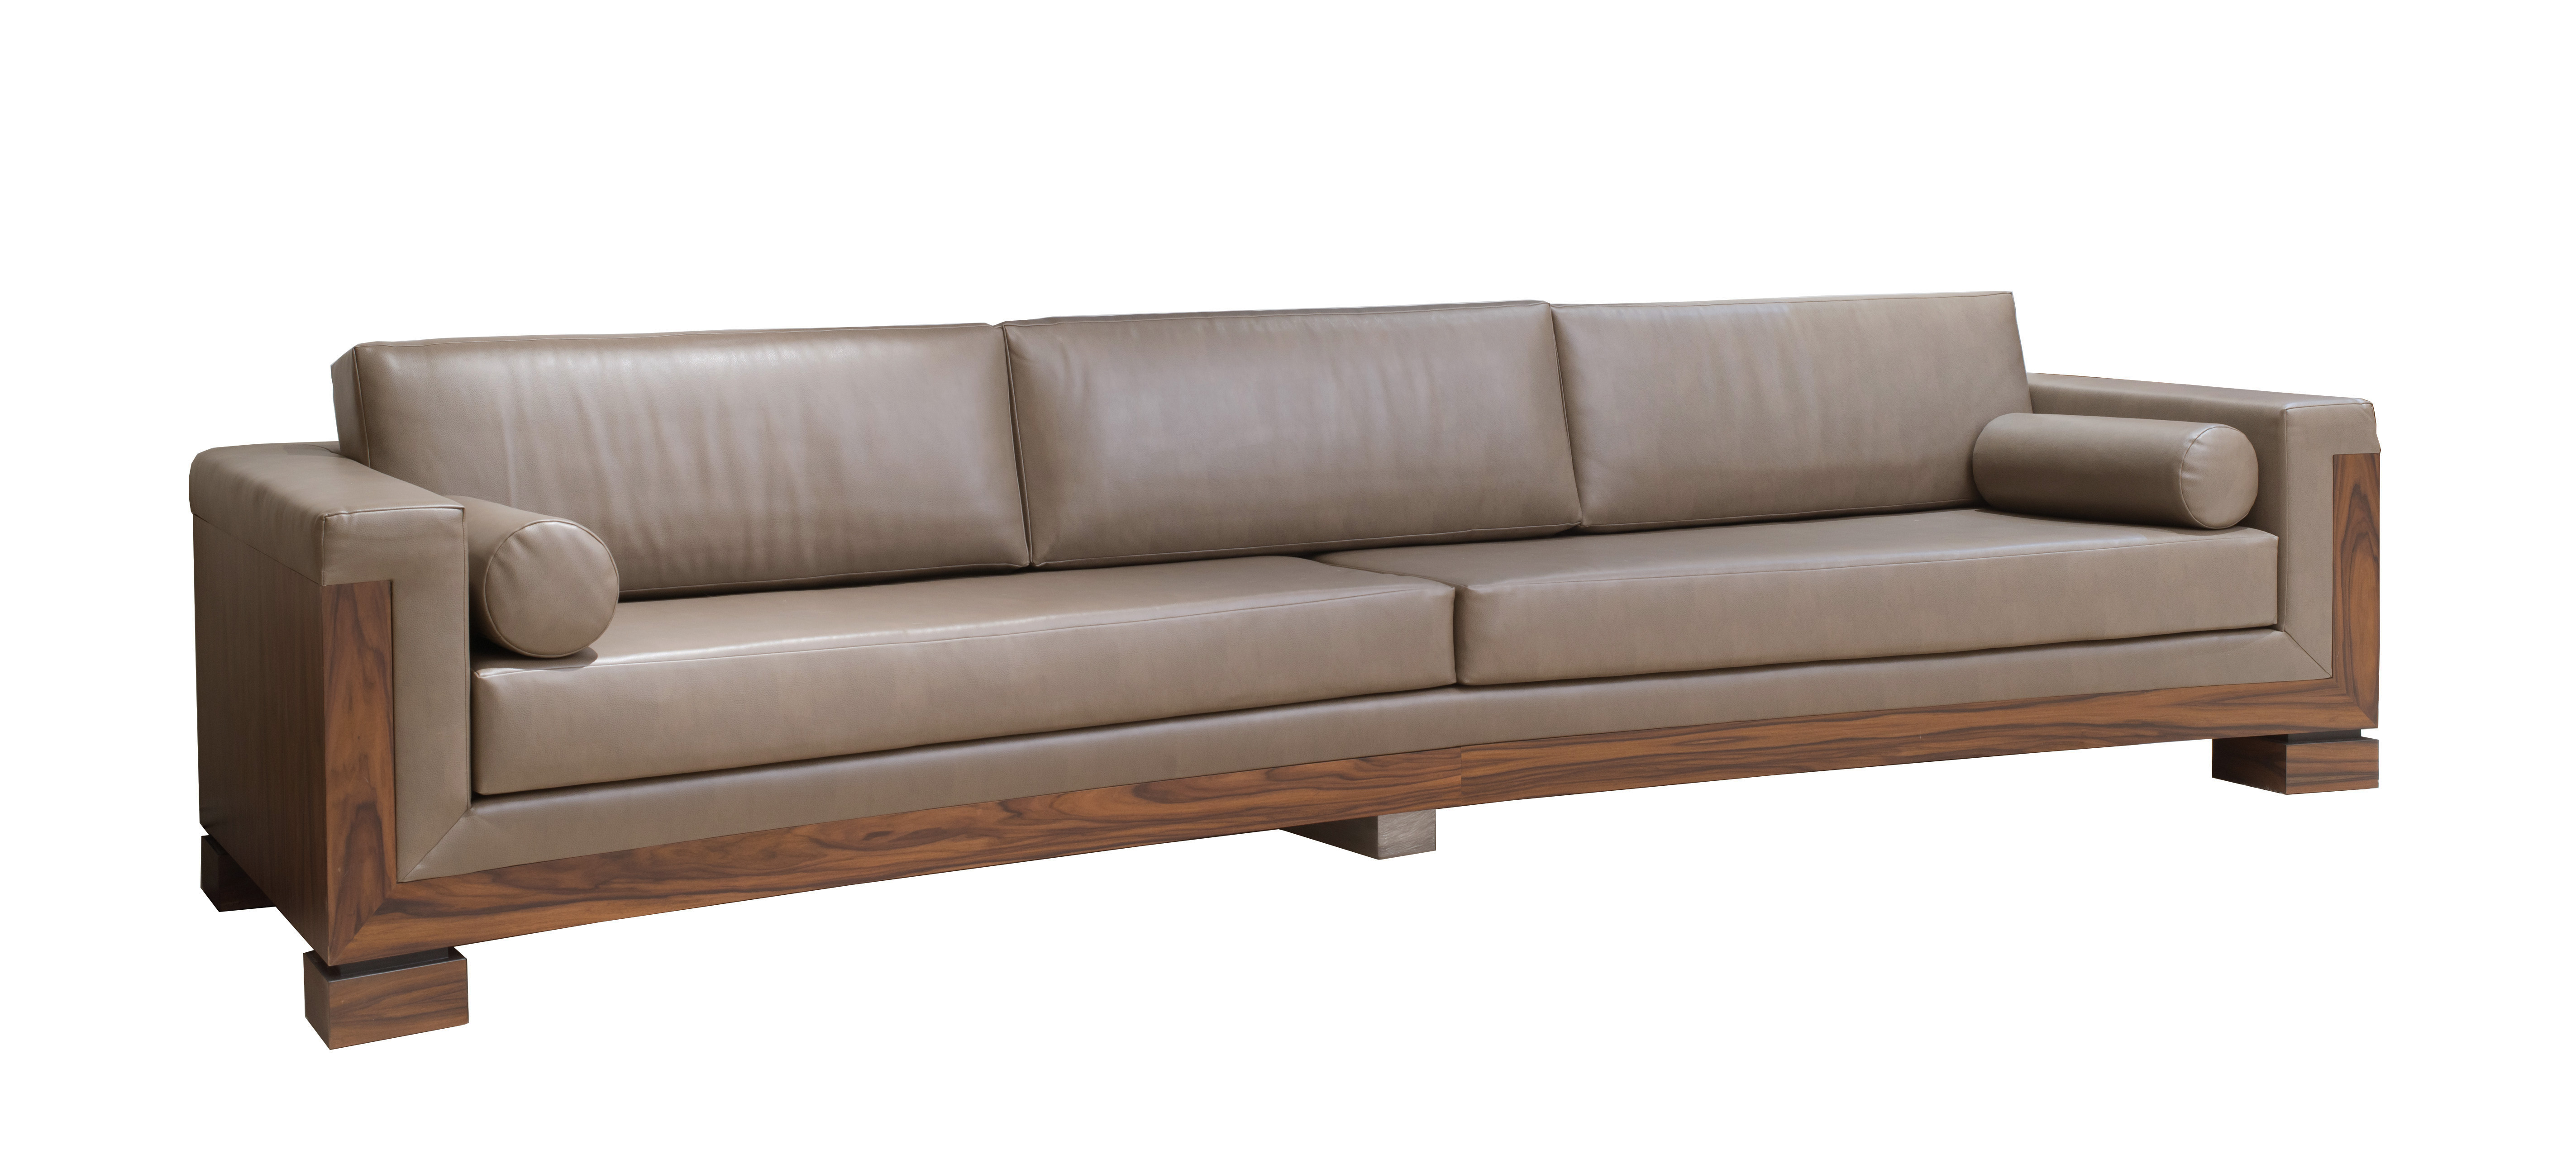 Contemporary extra long taupe leather sofa